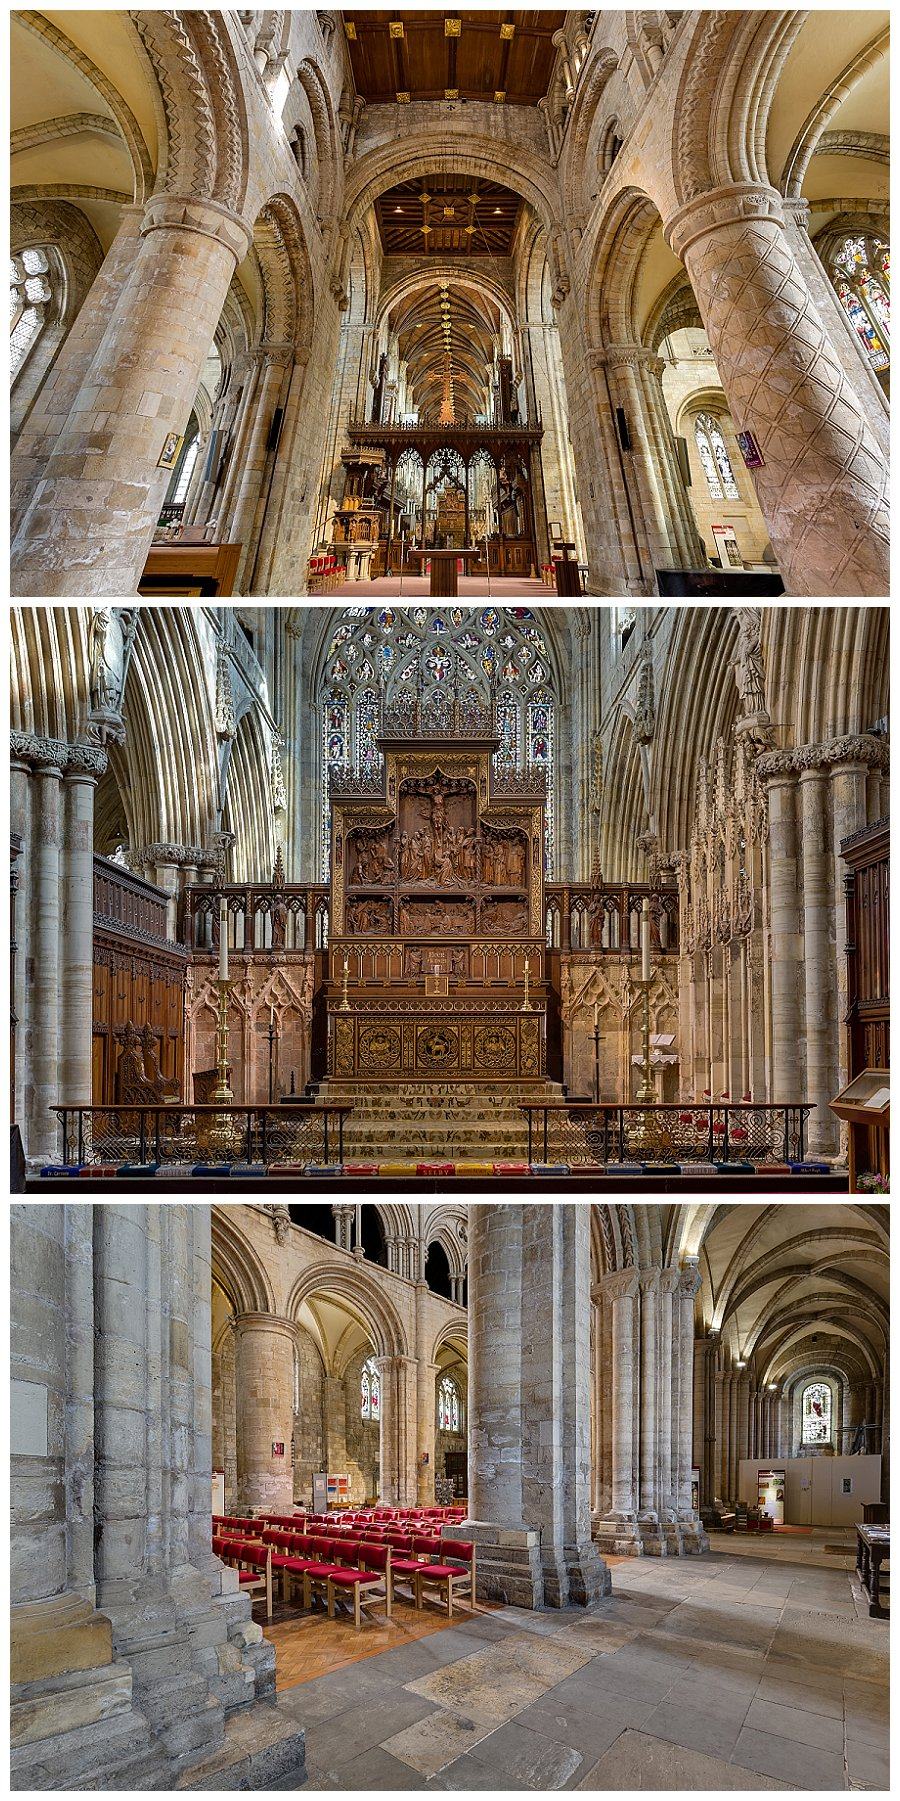 wedding photographers Selby, Photographer Selby Abbey, inside Selby abbey Yorkshire